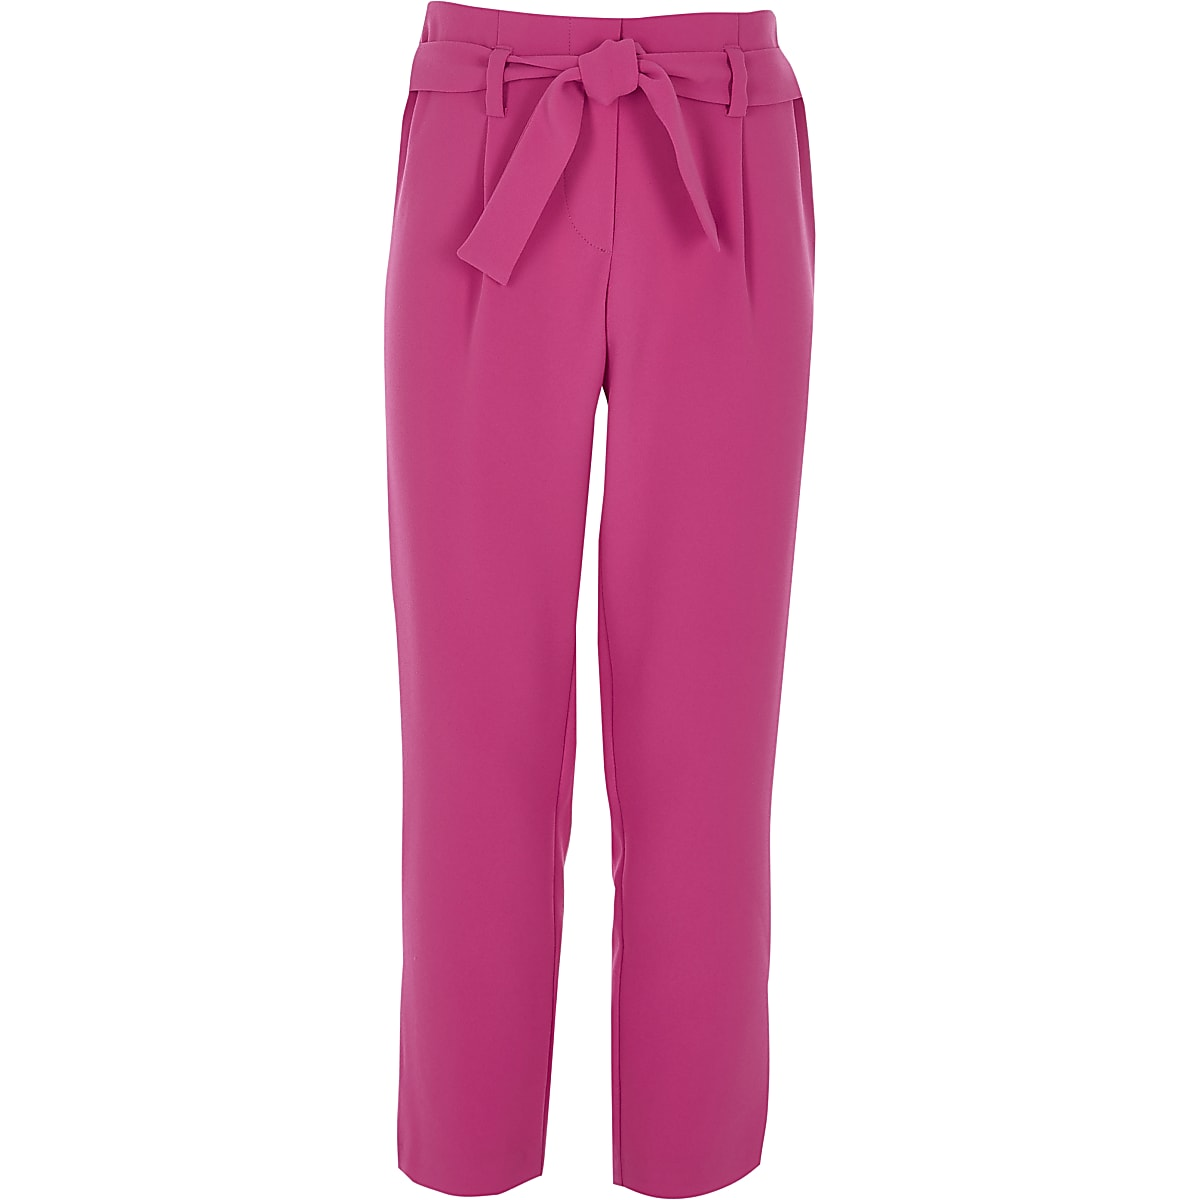 Girls pink tie front trousers